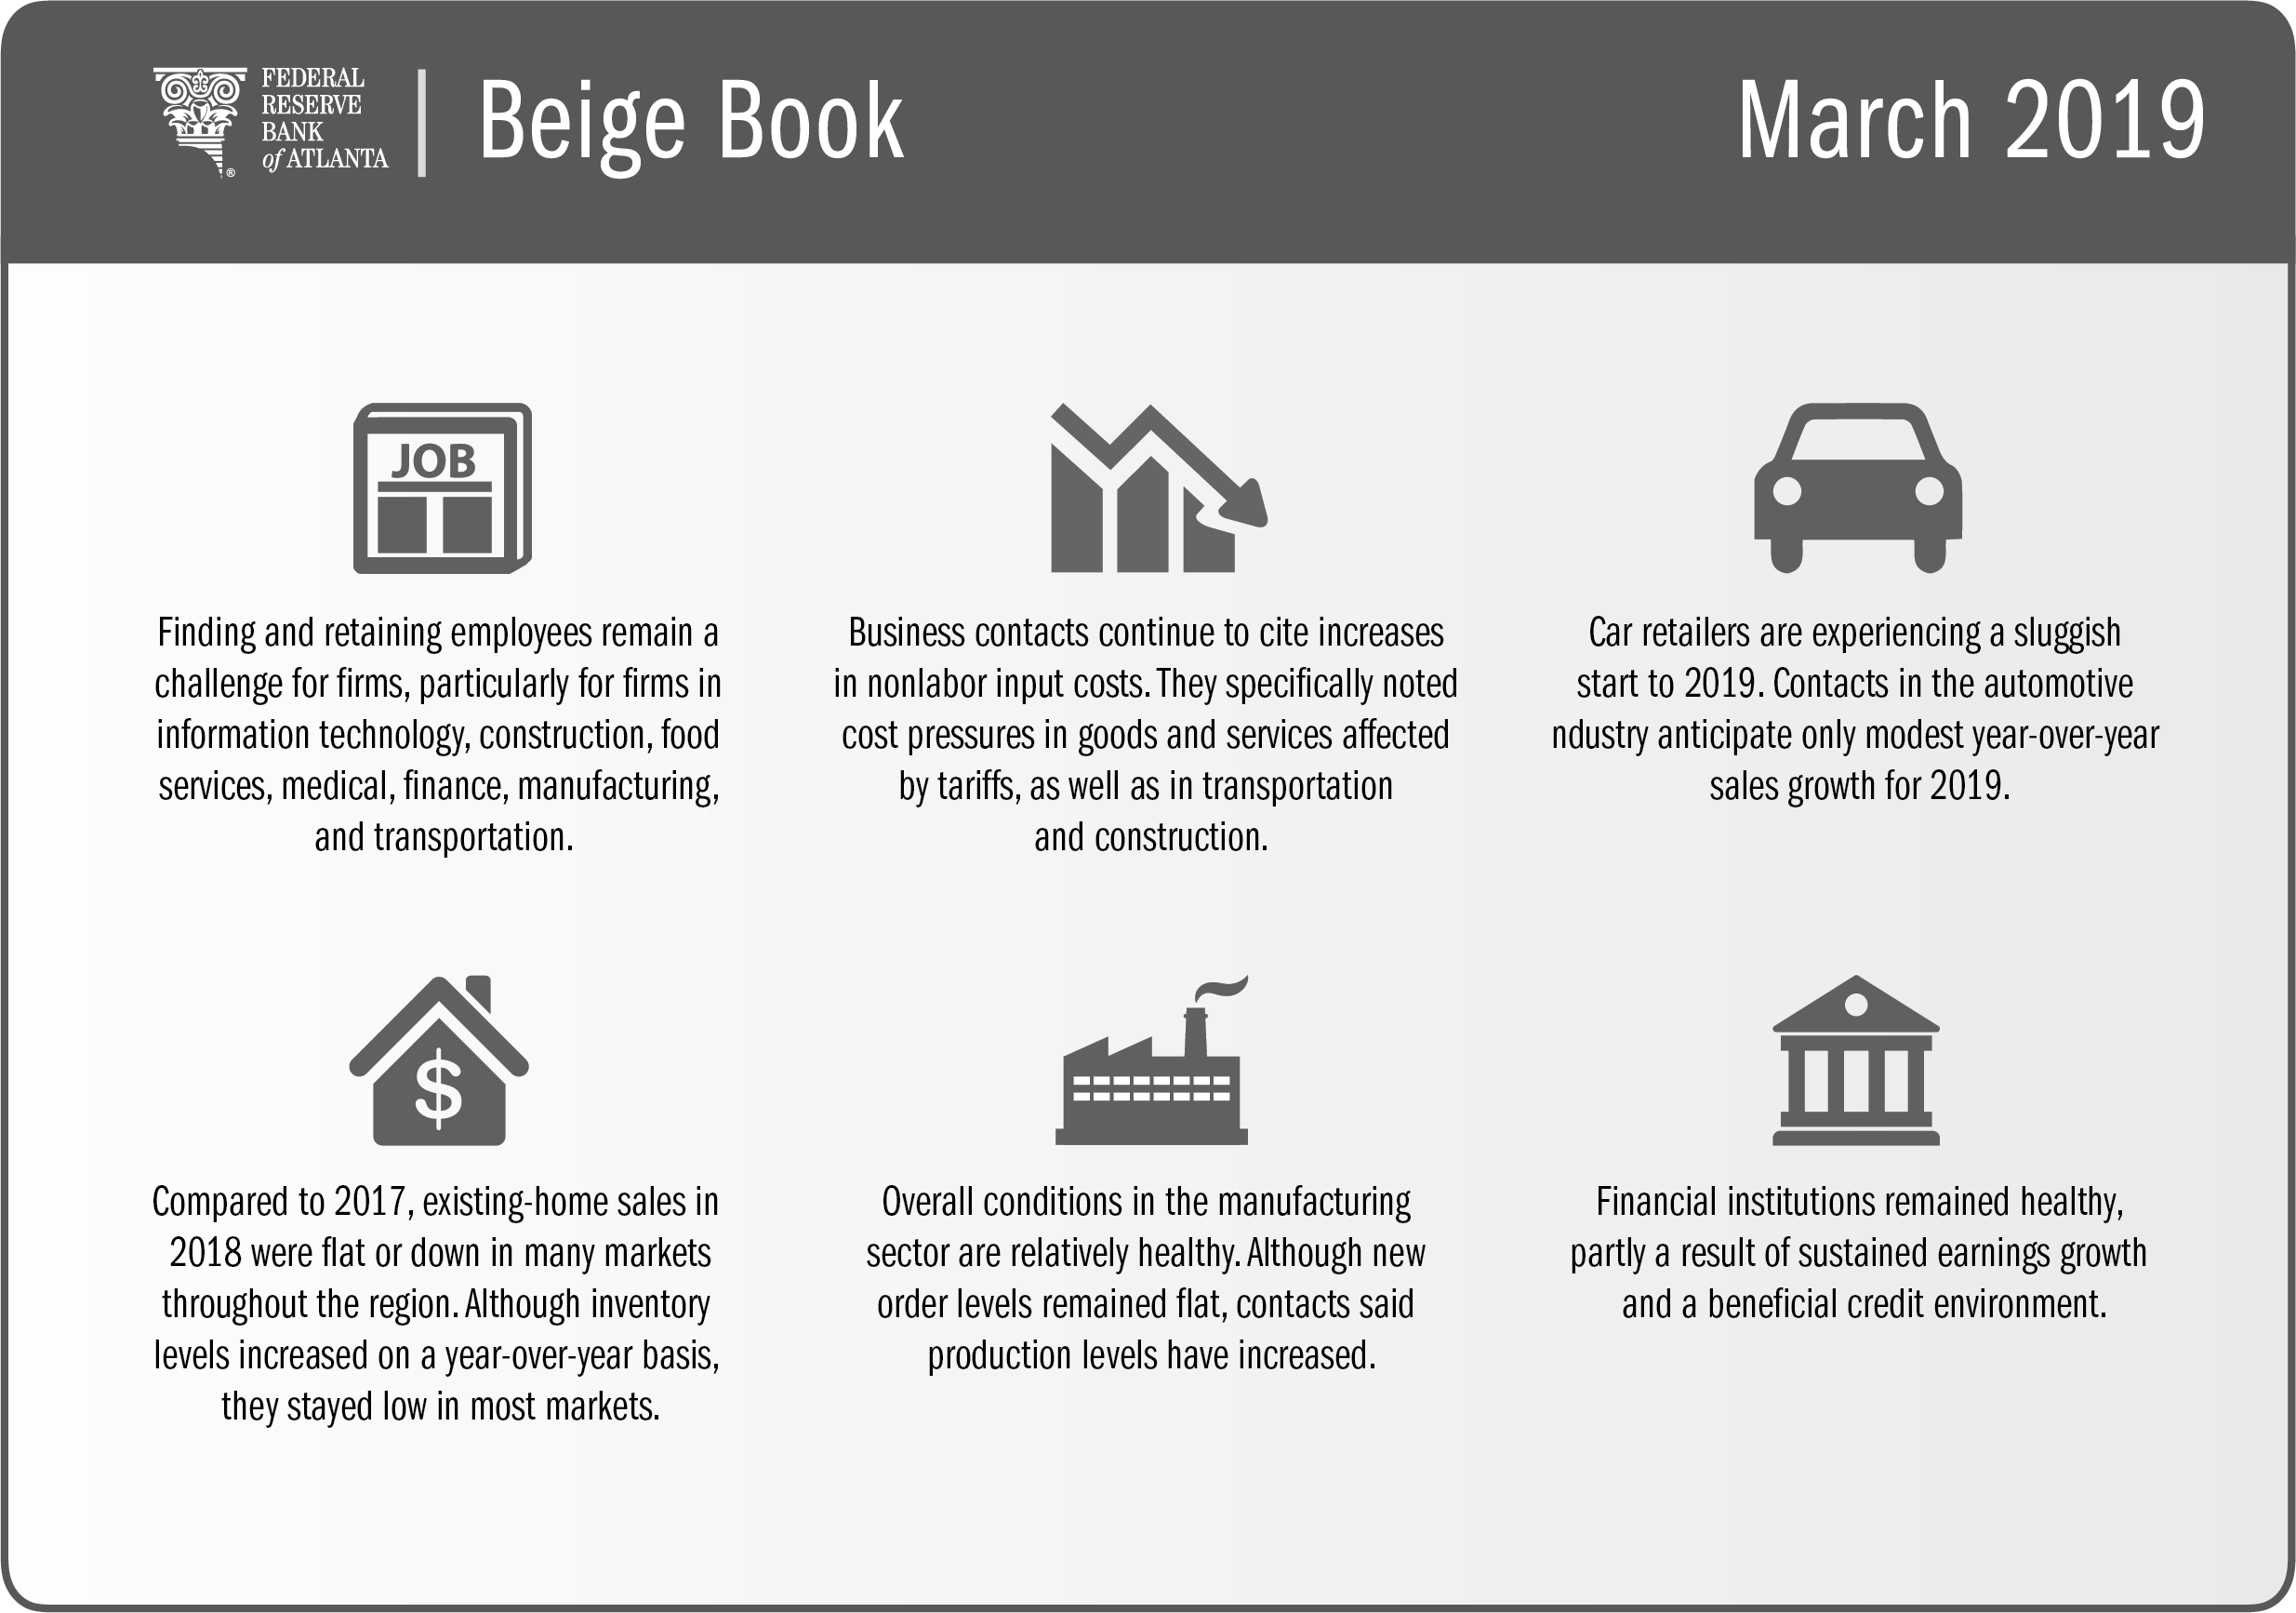 infographic with key findings on employee retention, input costs, and other details from the March 2019 Beige Book